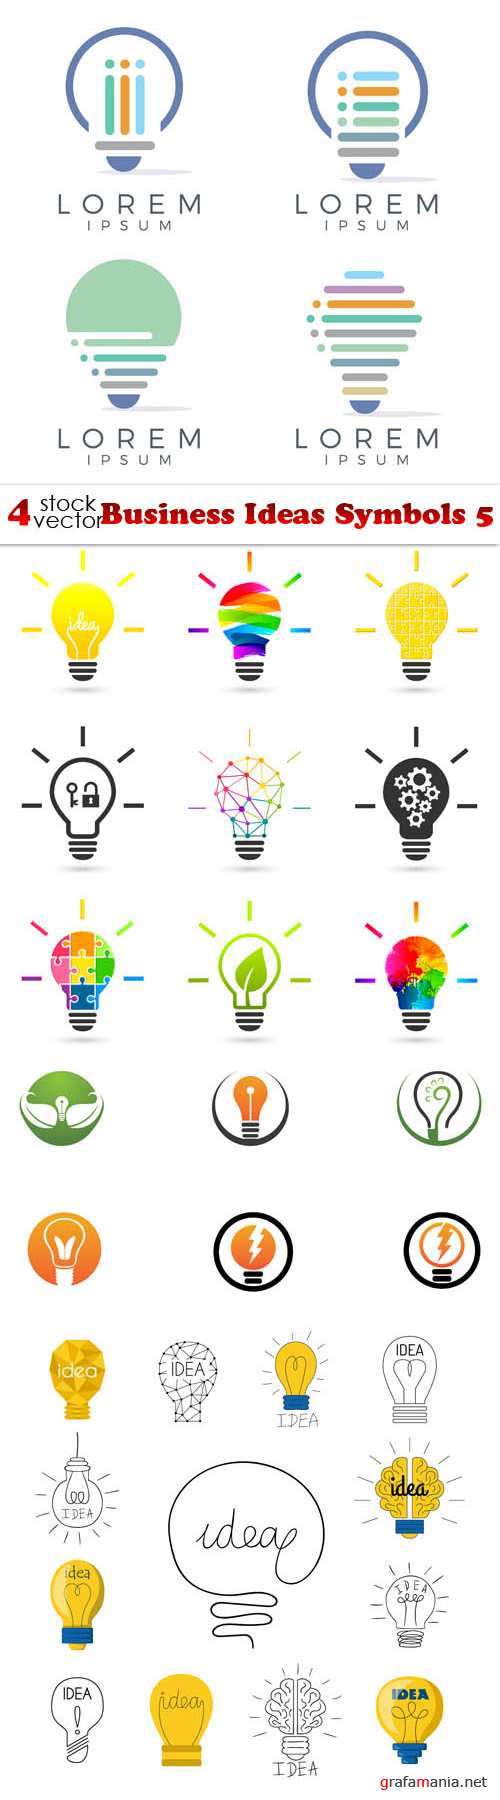 Vectors - Business Ideas Symbols 5